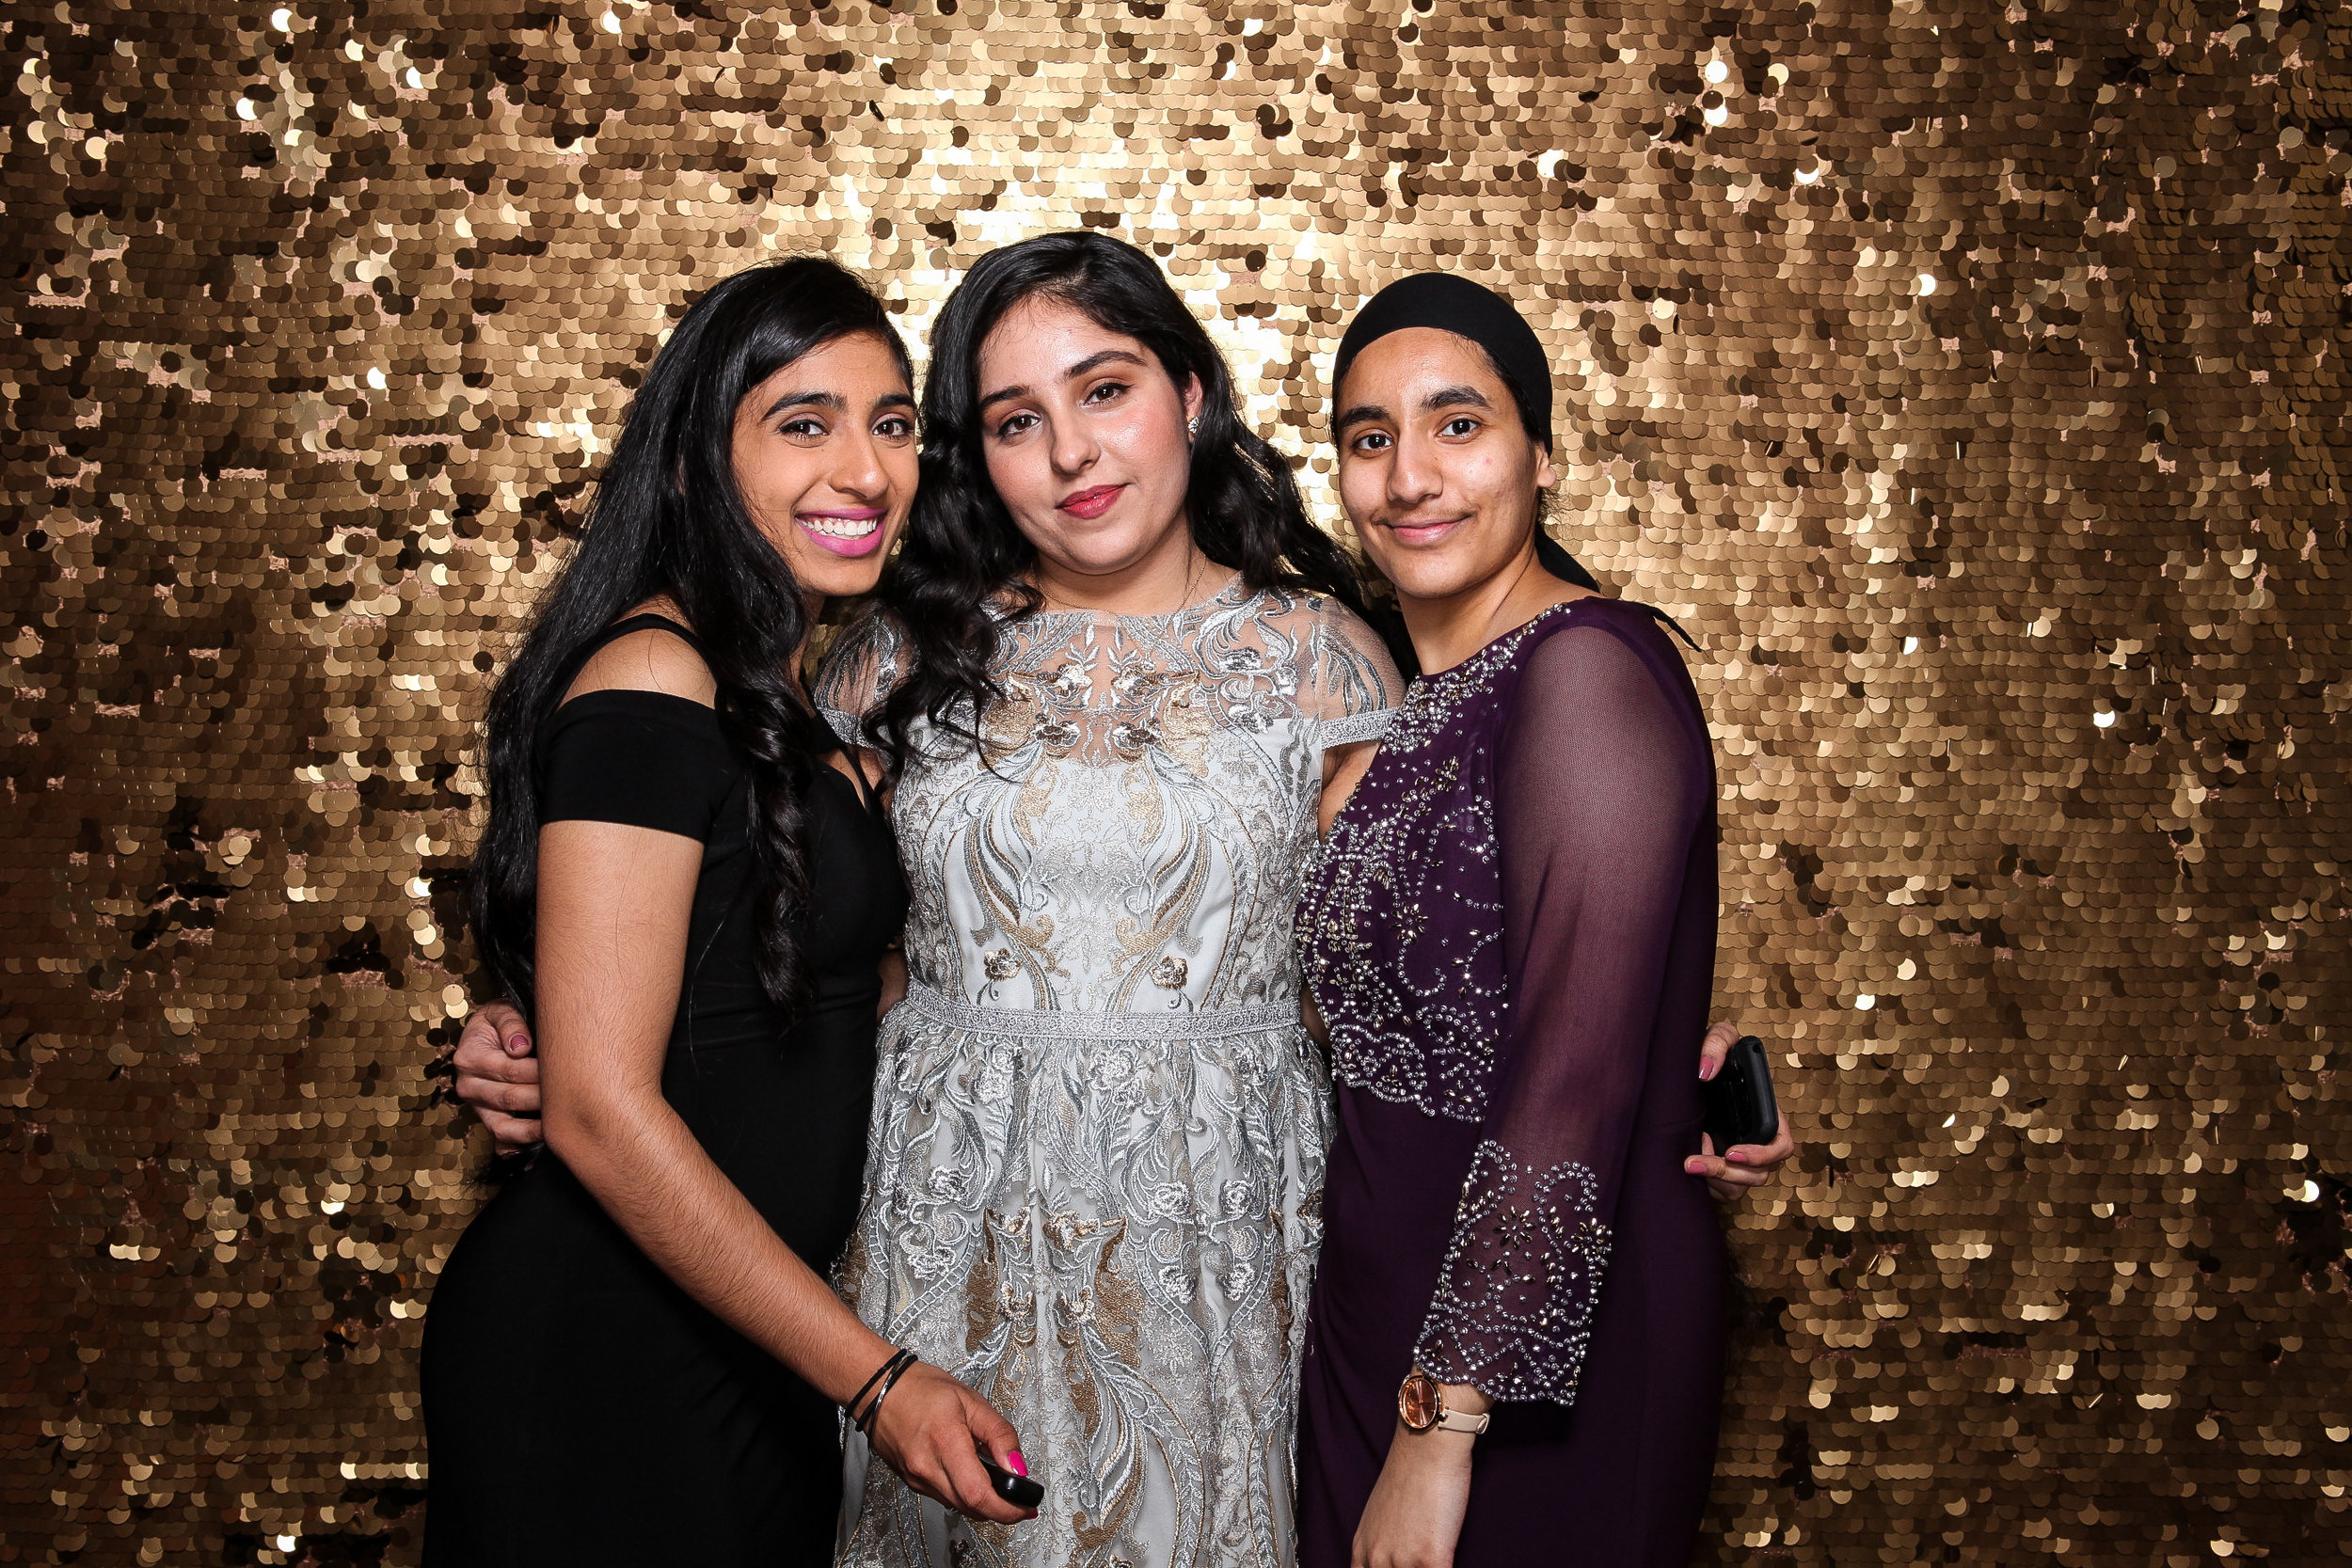 20190503_Adelphi_Senior_Formal-074.jpg